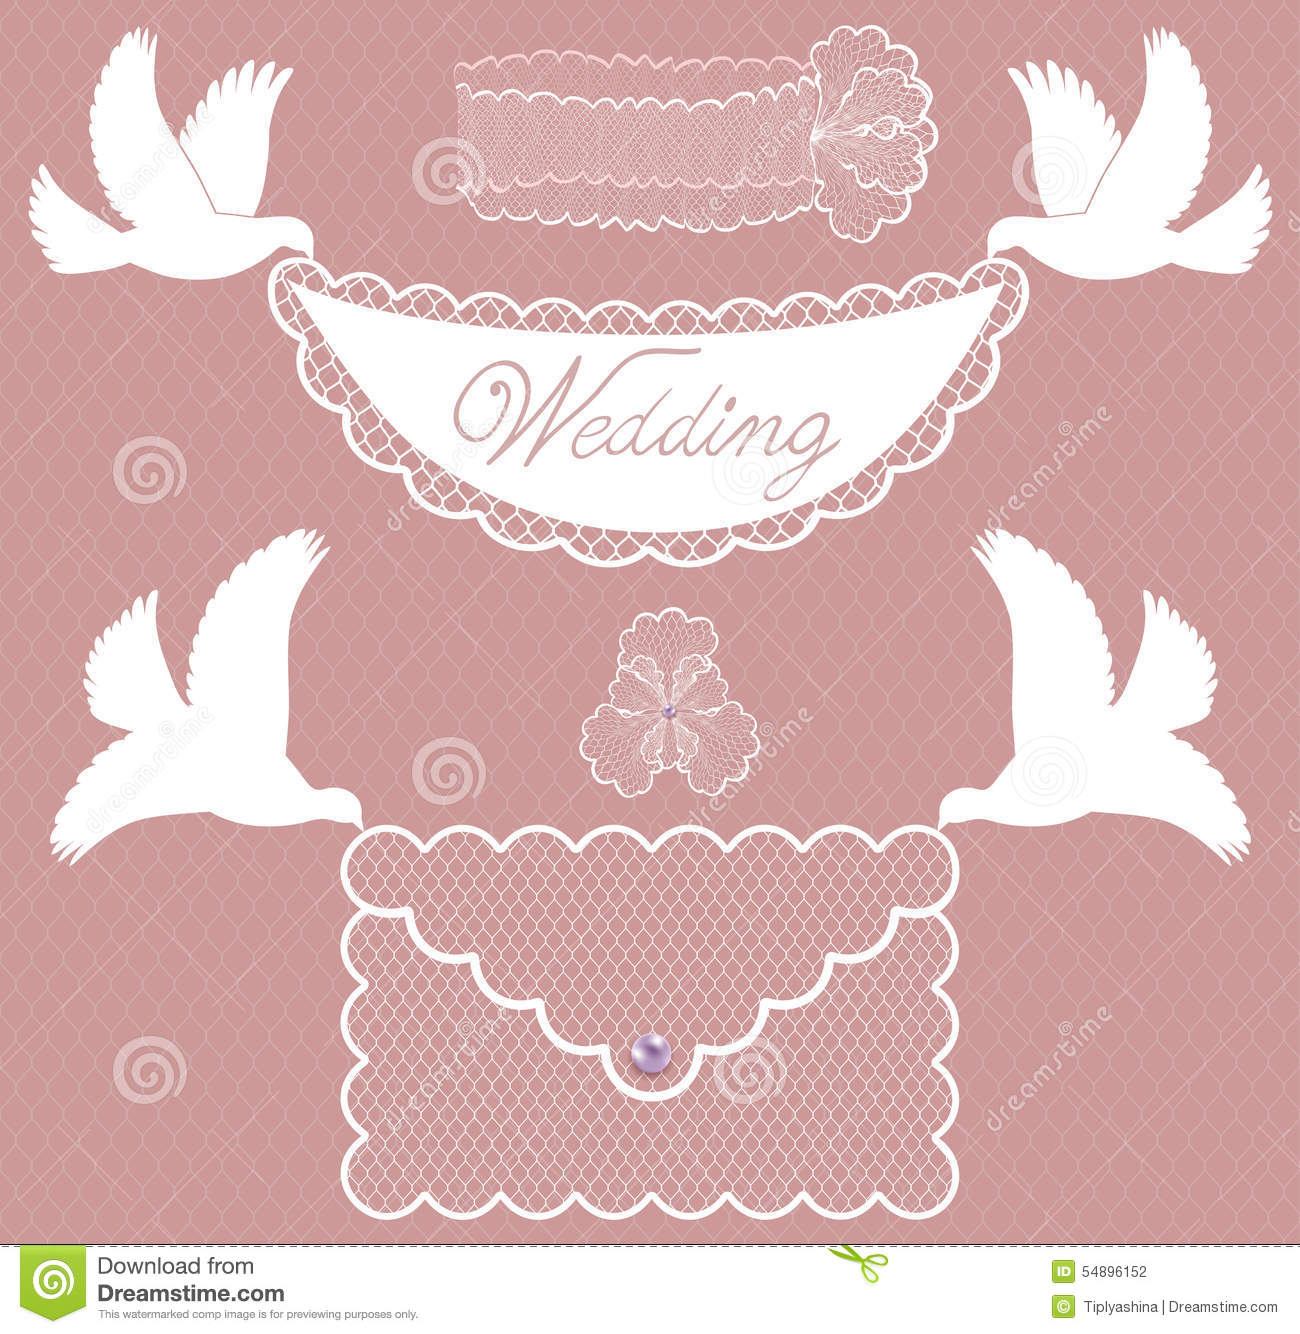 Character Set Wedding With Doves Stock Vector - Illustration of ...